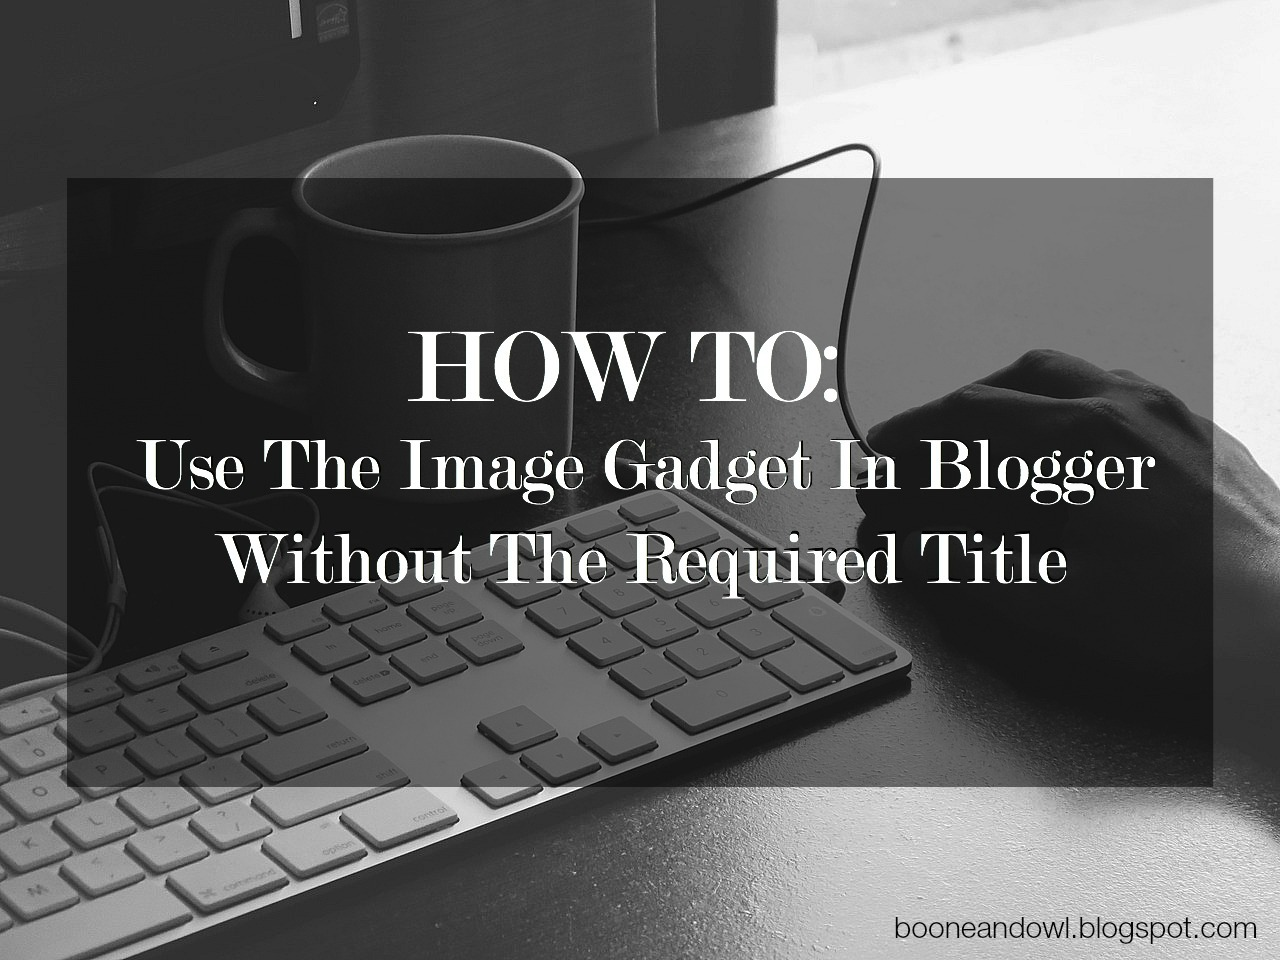 Use image gadget in blogger without required title